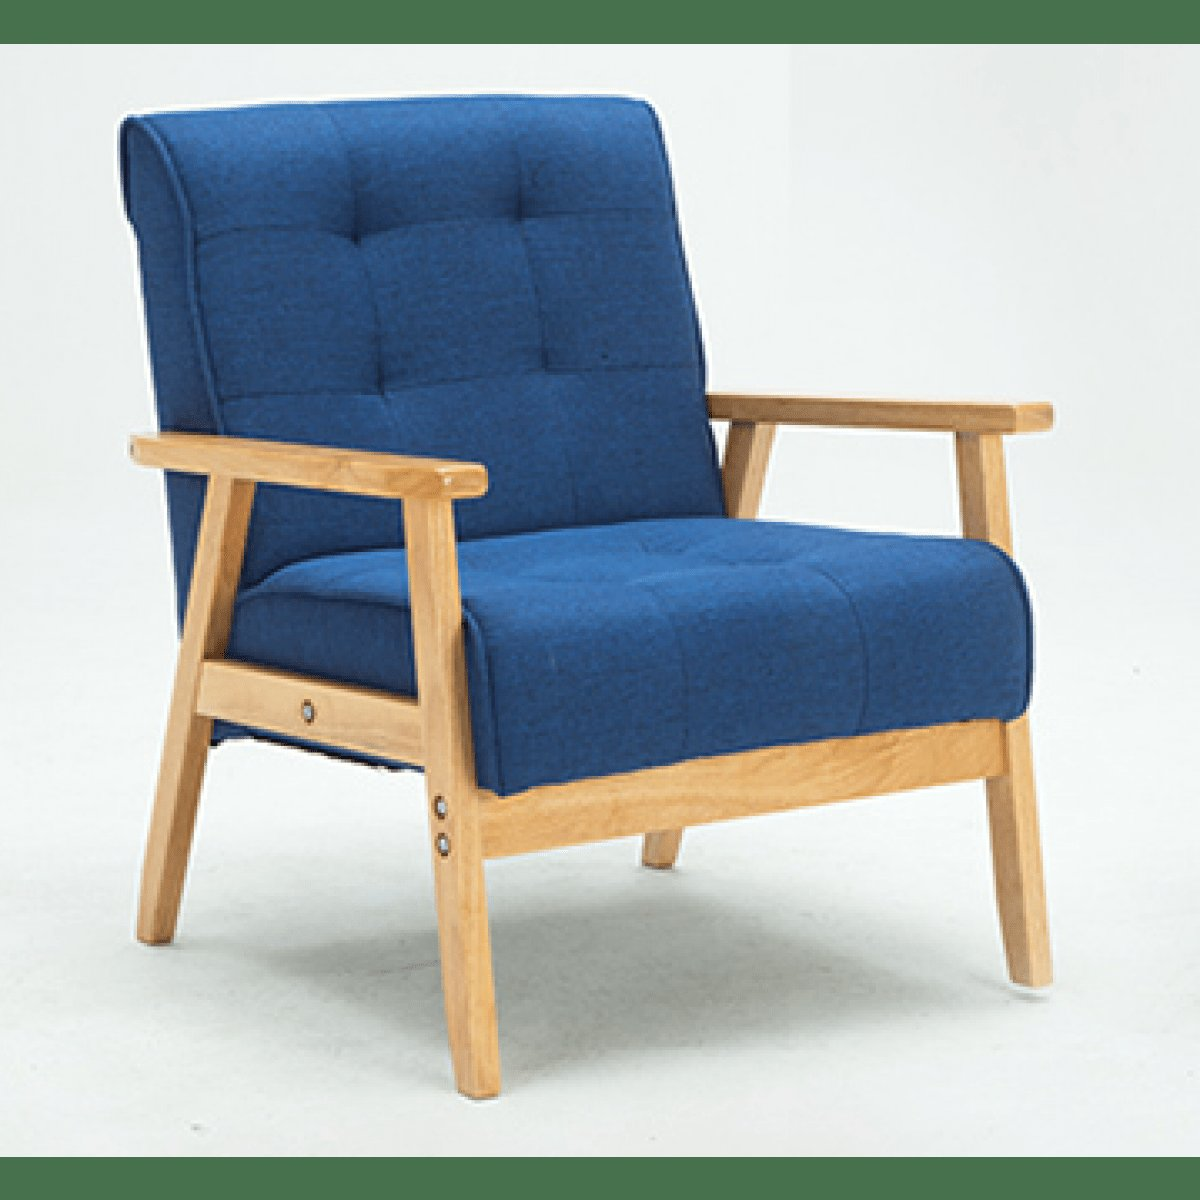 Best Double Star Furniture Single Armchair Sofa Chair Double With Pictures